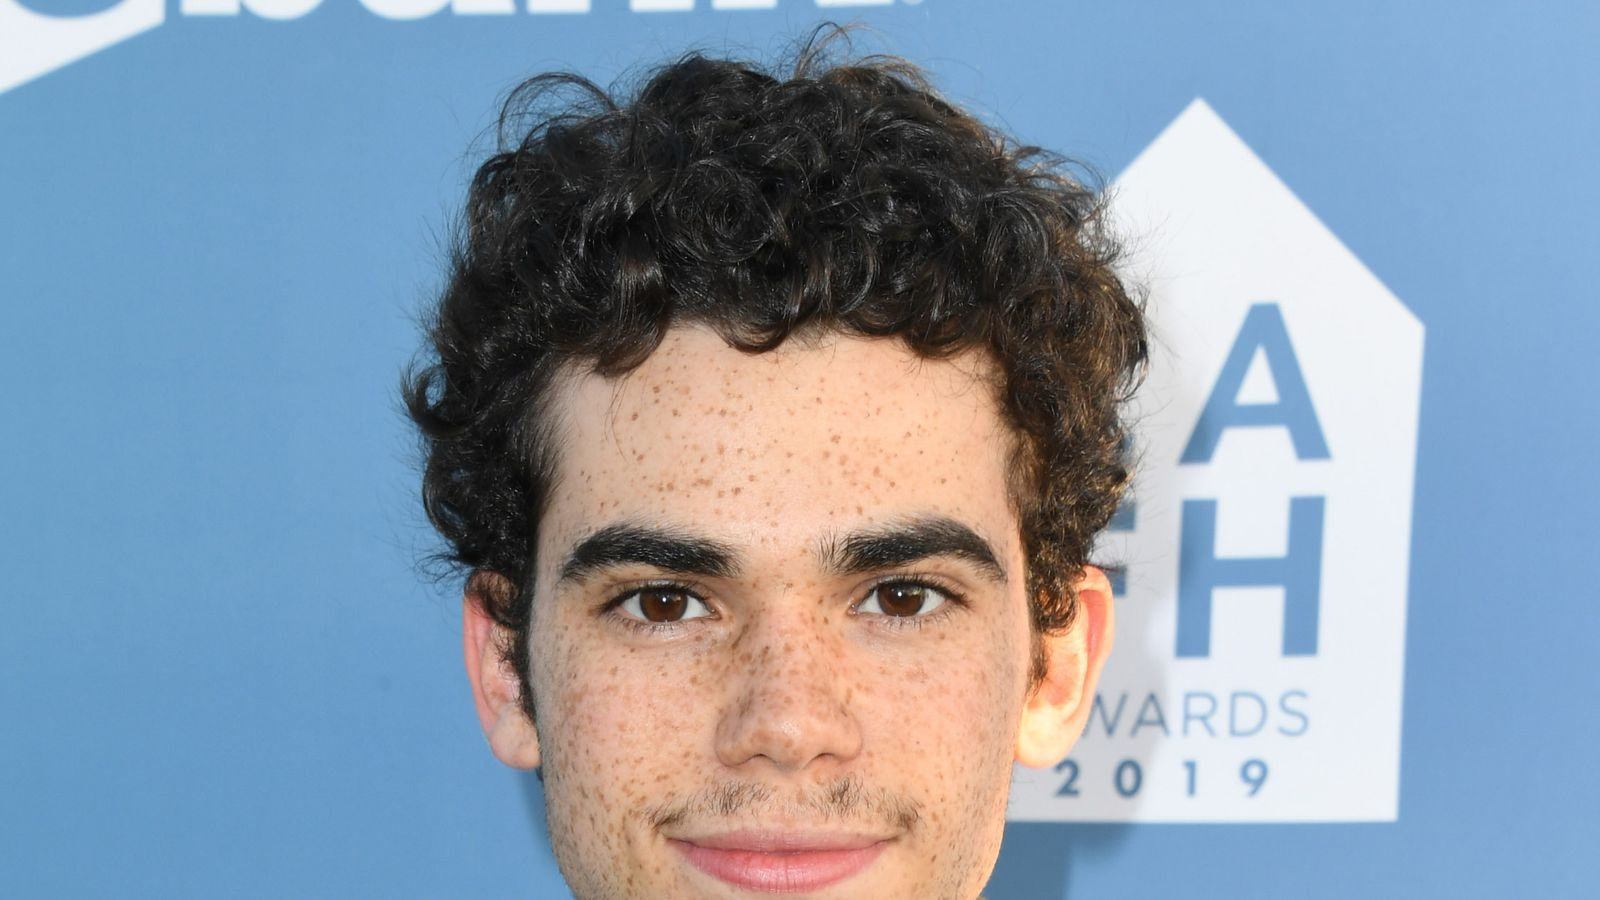 Cameron Boyce Disney Star 20 Died Of Epilepsy Ents Arts News Sky News